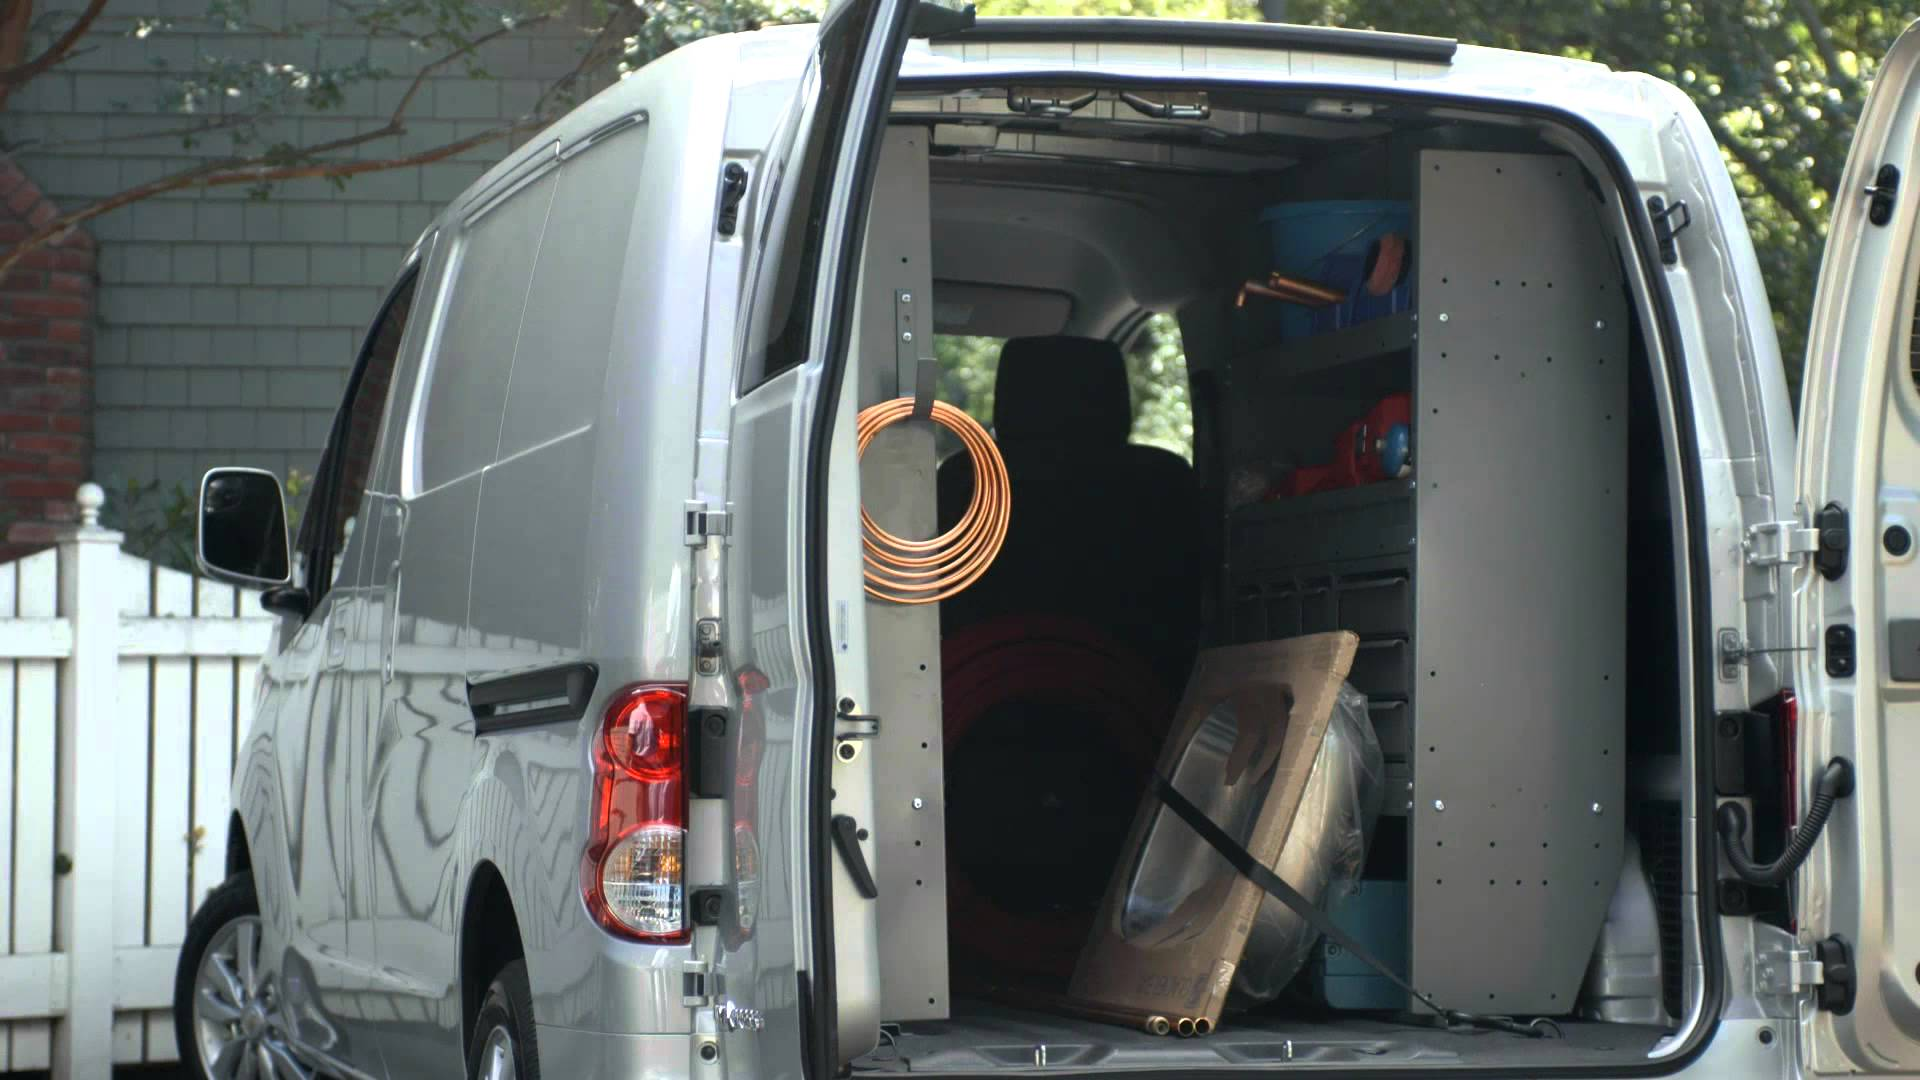 interior of Chevrolet Express van showing sink and various contractor tools